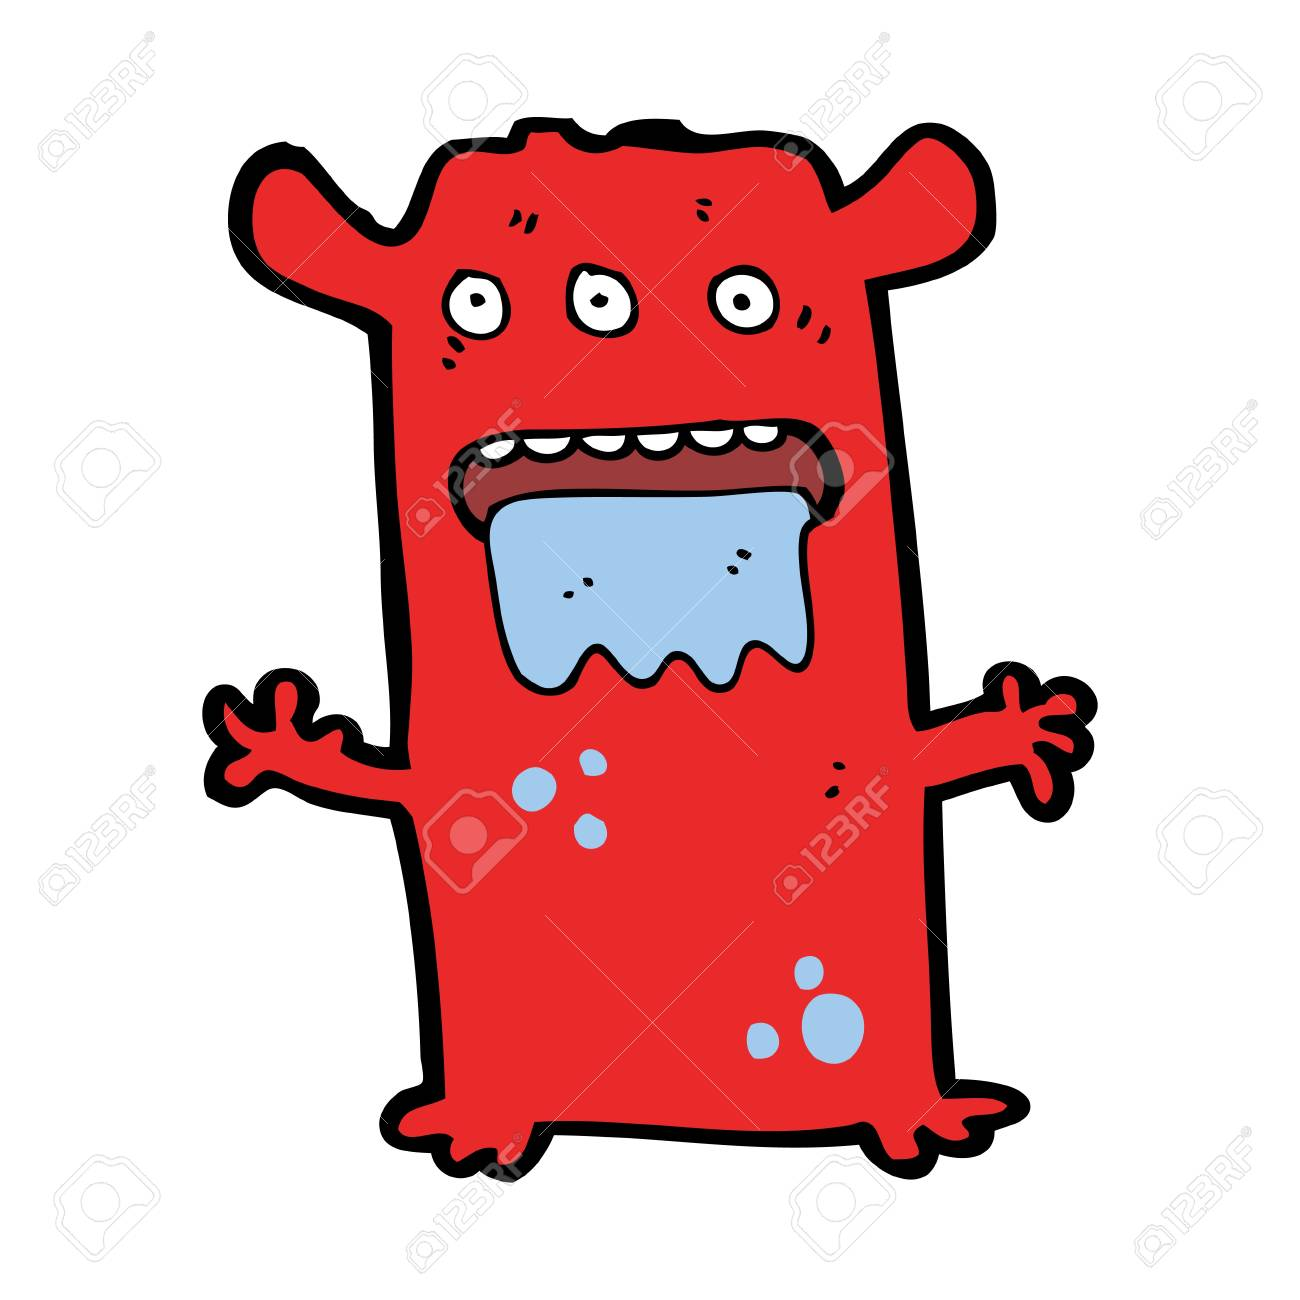 cartoon monster Stock Vector - 16055084